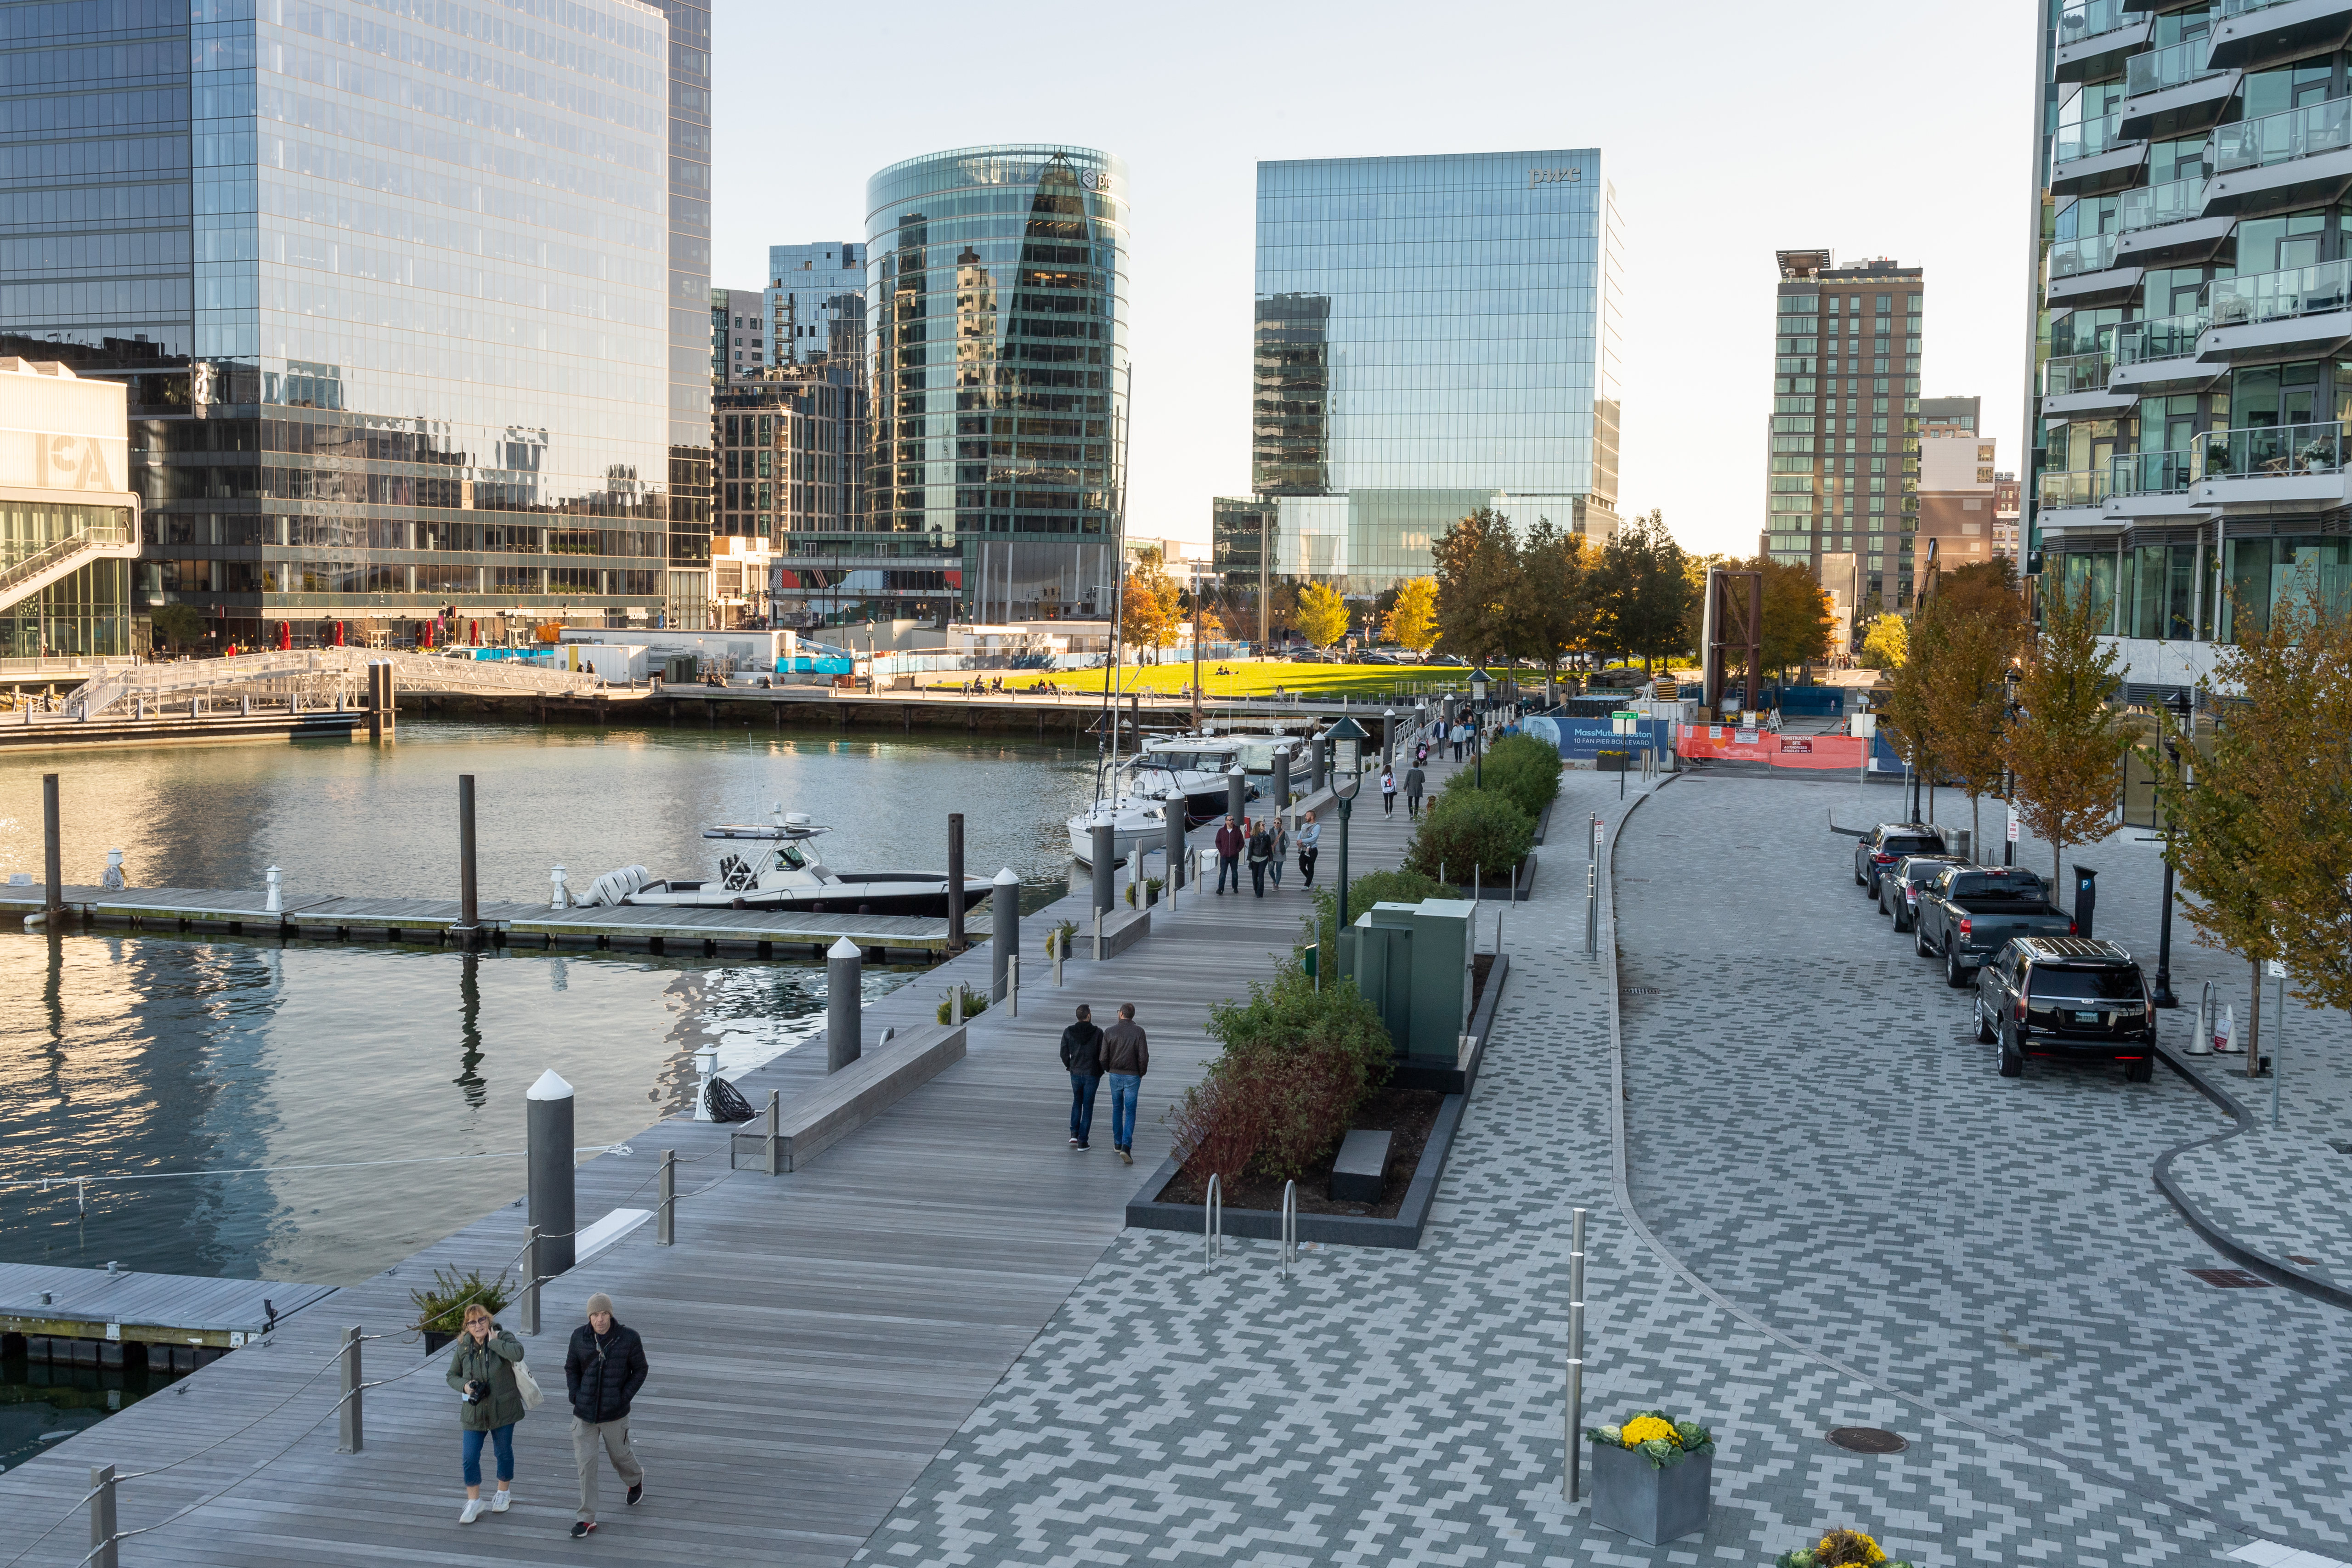 Fan Pier in the Seaport District